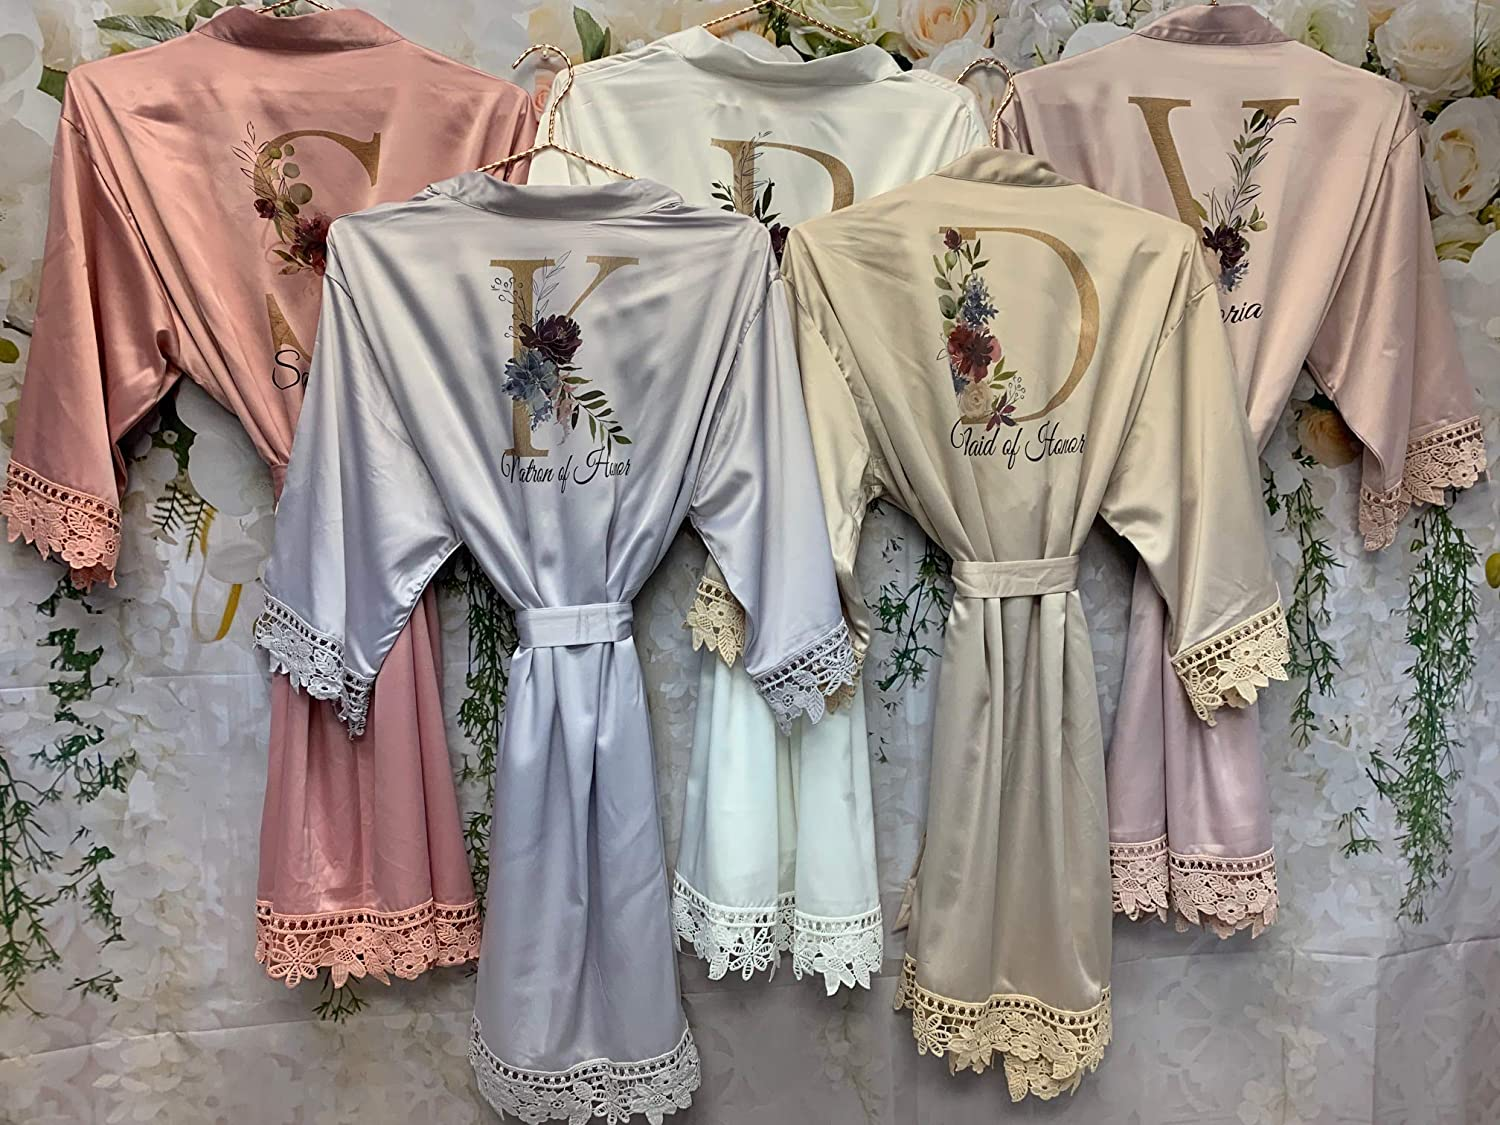 Silk Bridesmaid Robes Lace Bridal Gown Wedding Gift